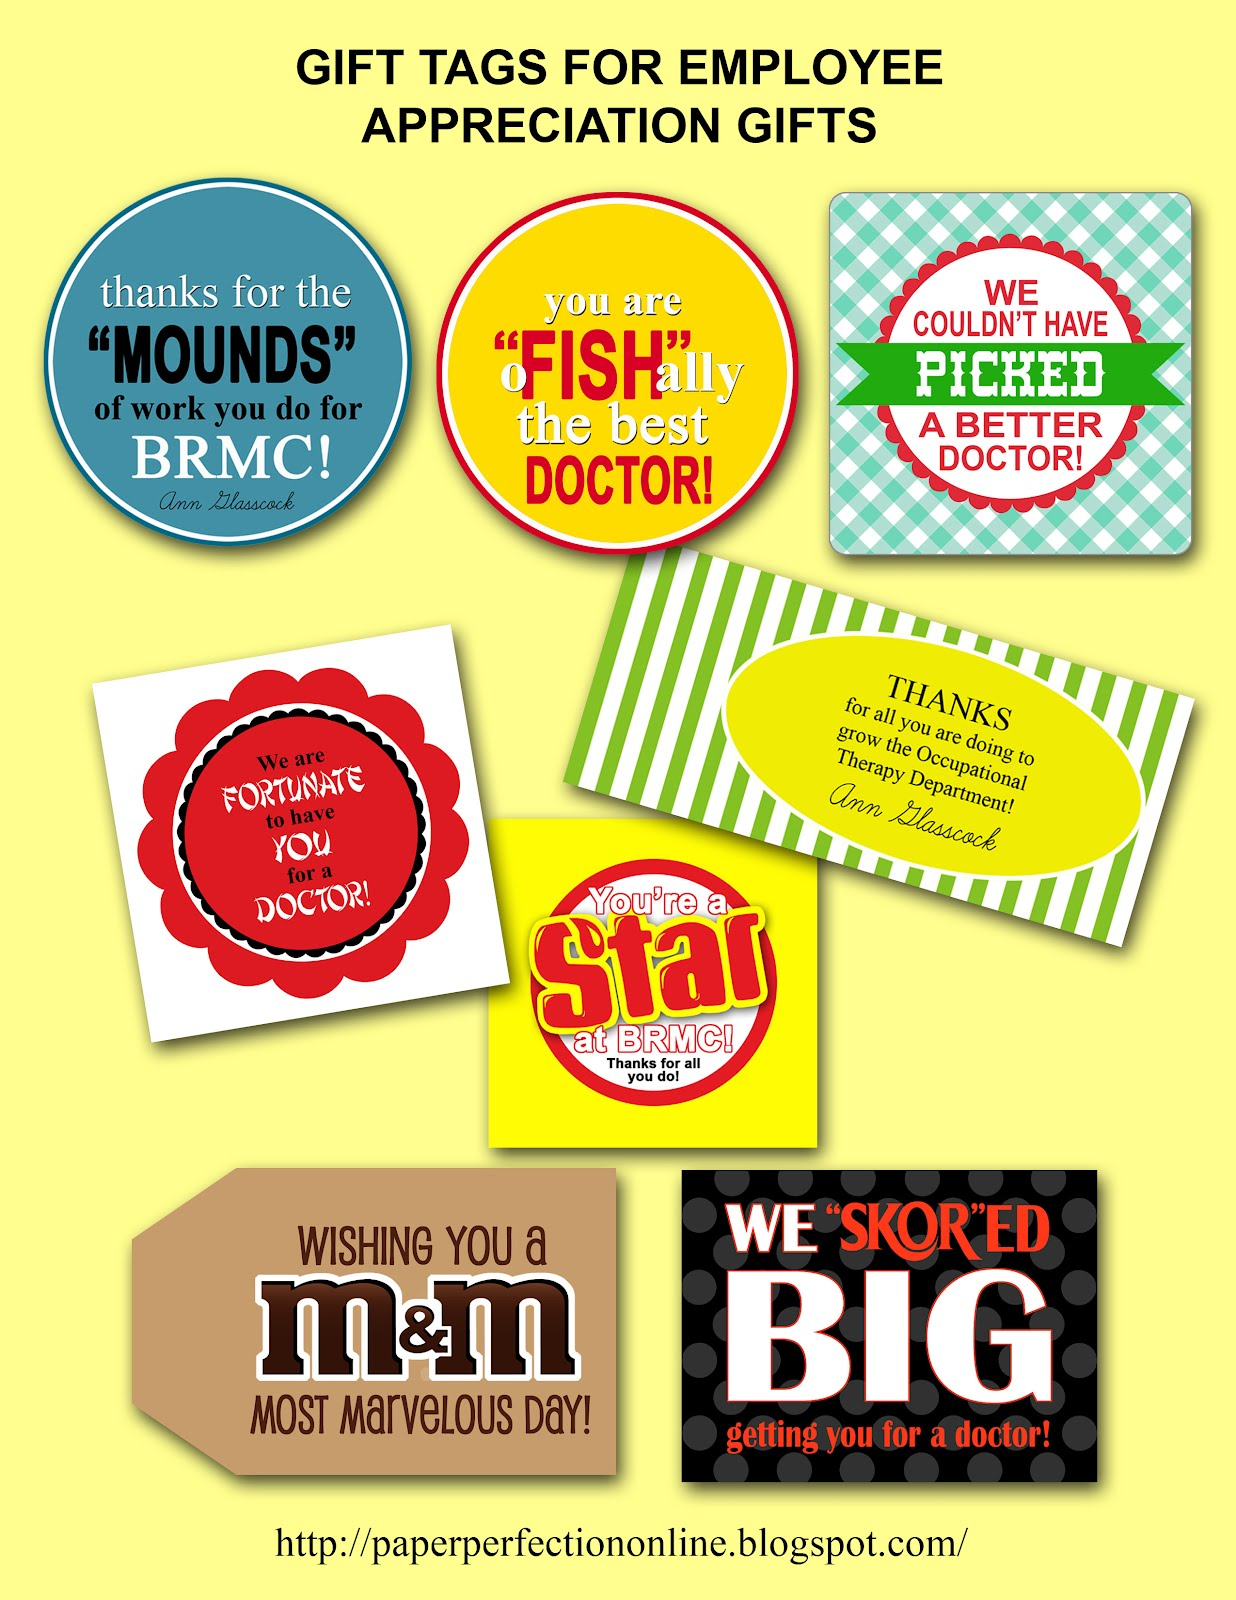 staff appreciation quotes for hard work quotesgram staff appreciation quotes for hard work